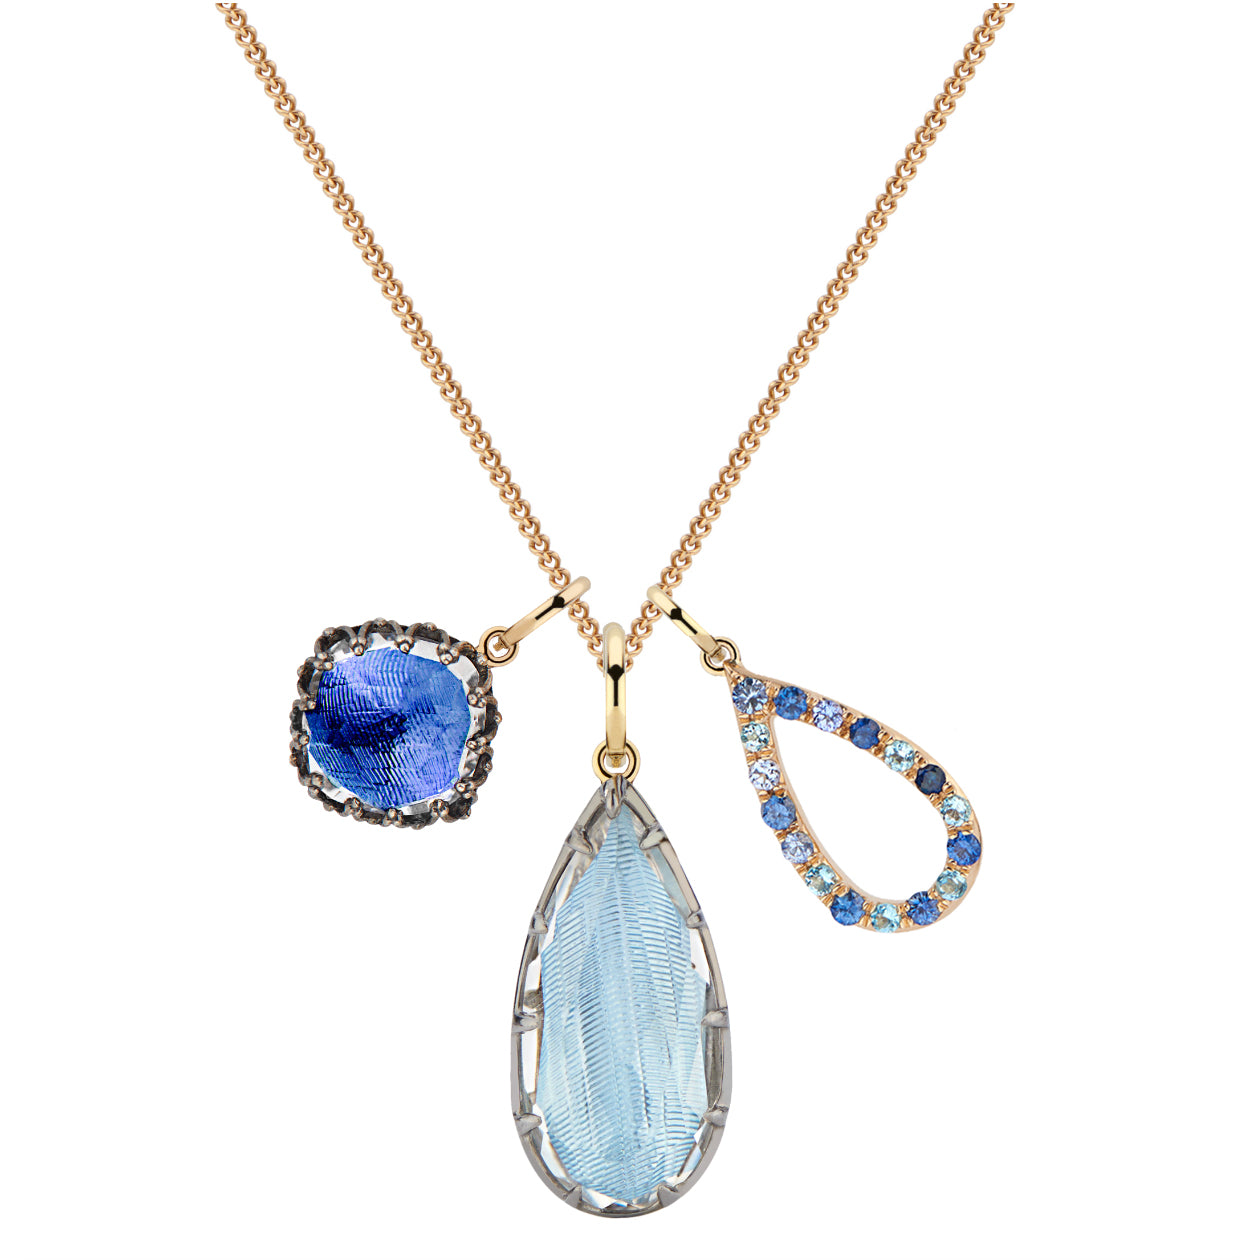 Lady Emily Elements Cluster Necklace - Water